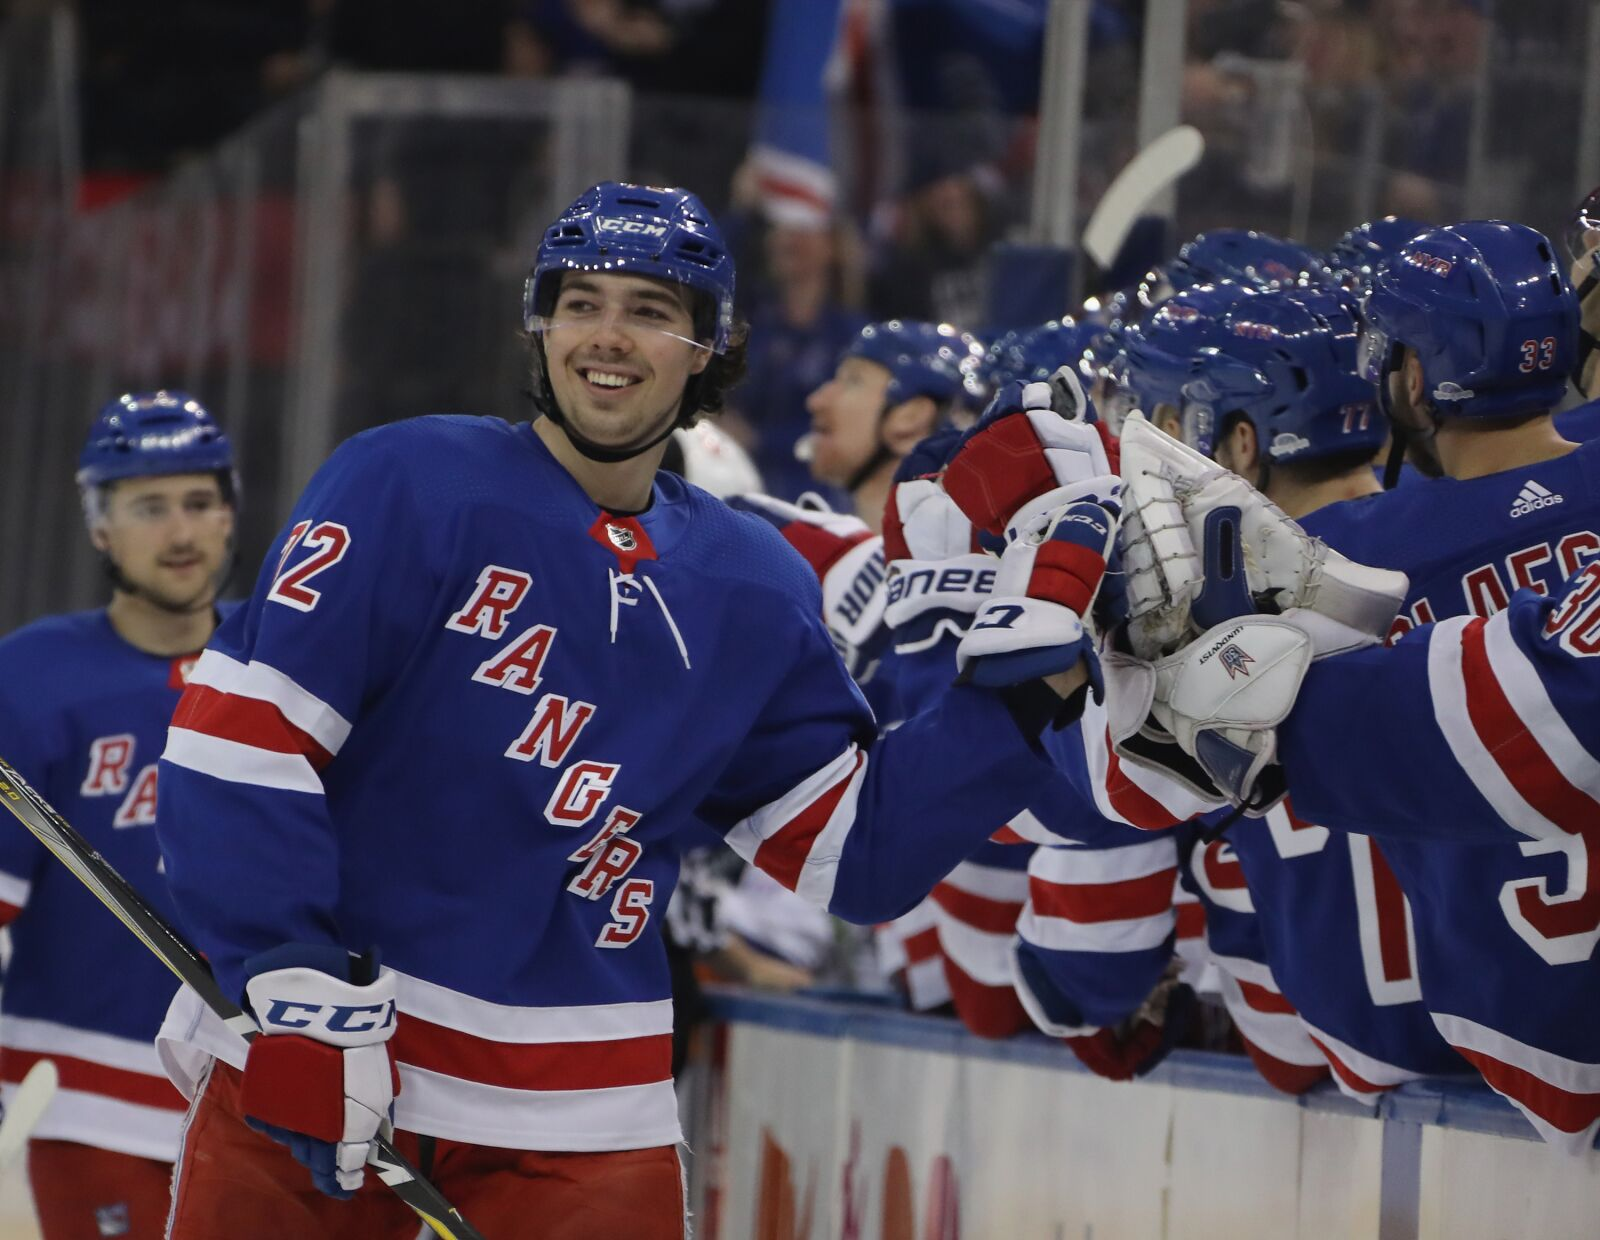 c8be525d052 New York Rangers: Dialing Back Expectations For Prospects